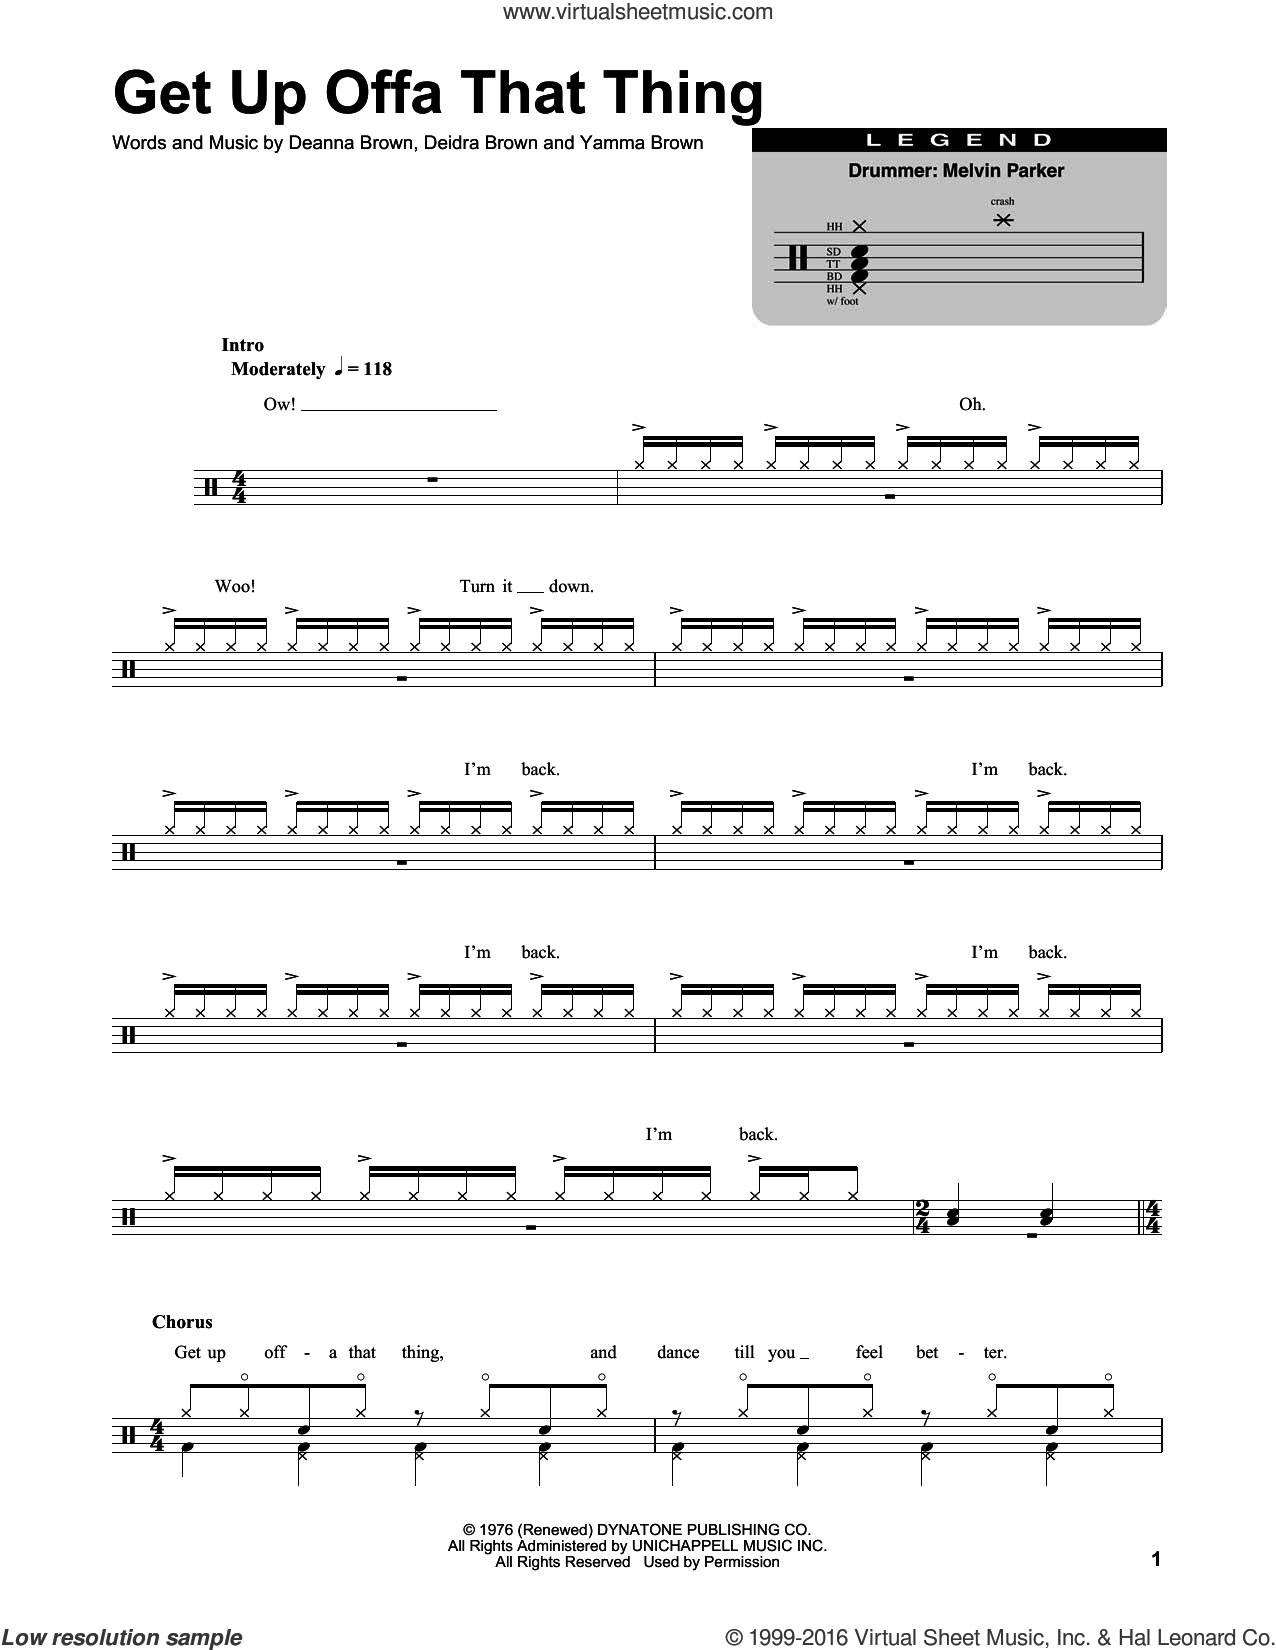 Get Up Offa That Thing sheet music for drums by James Brown, Deanna Brown, Deidra Brown and Yamma Brown, intermediate skill level